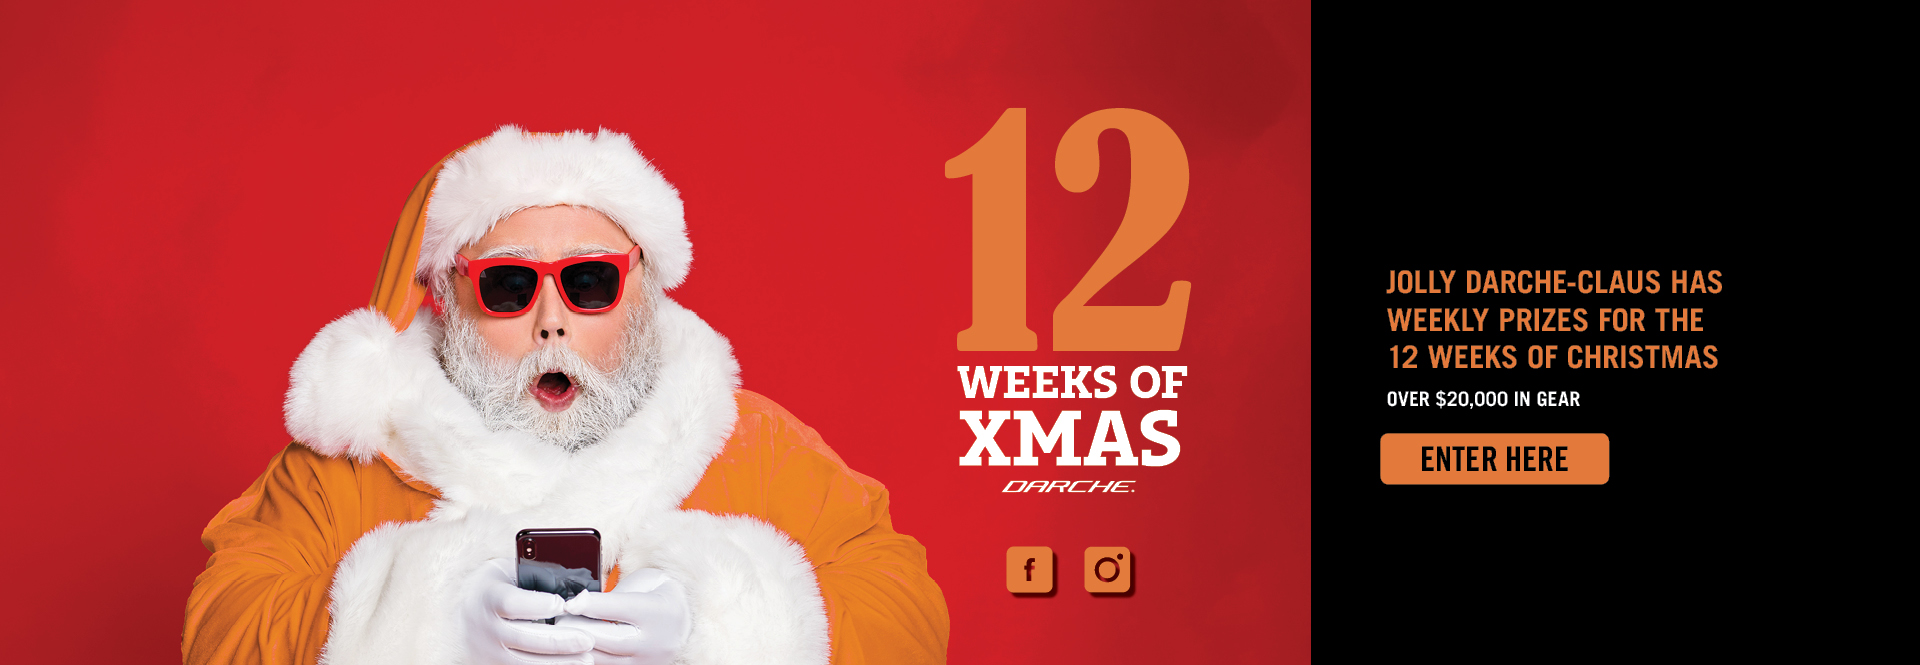 Darche 12 Weeks of Christmas